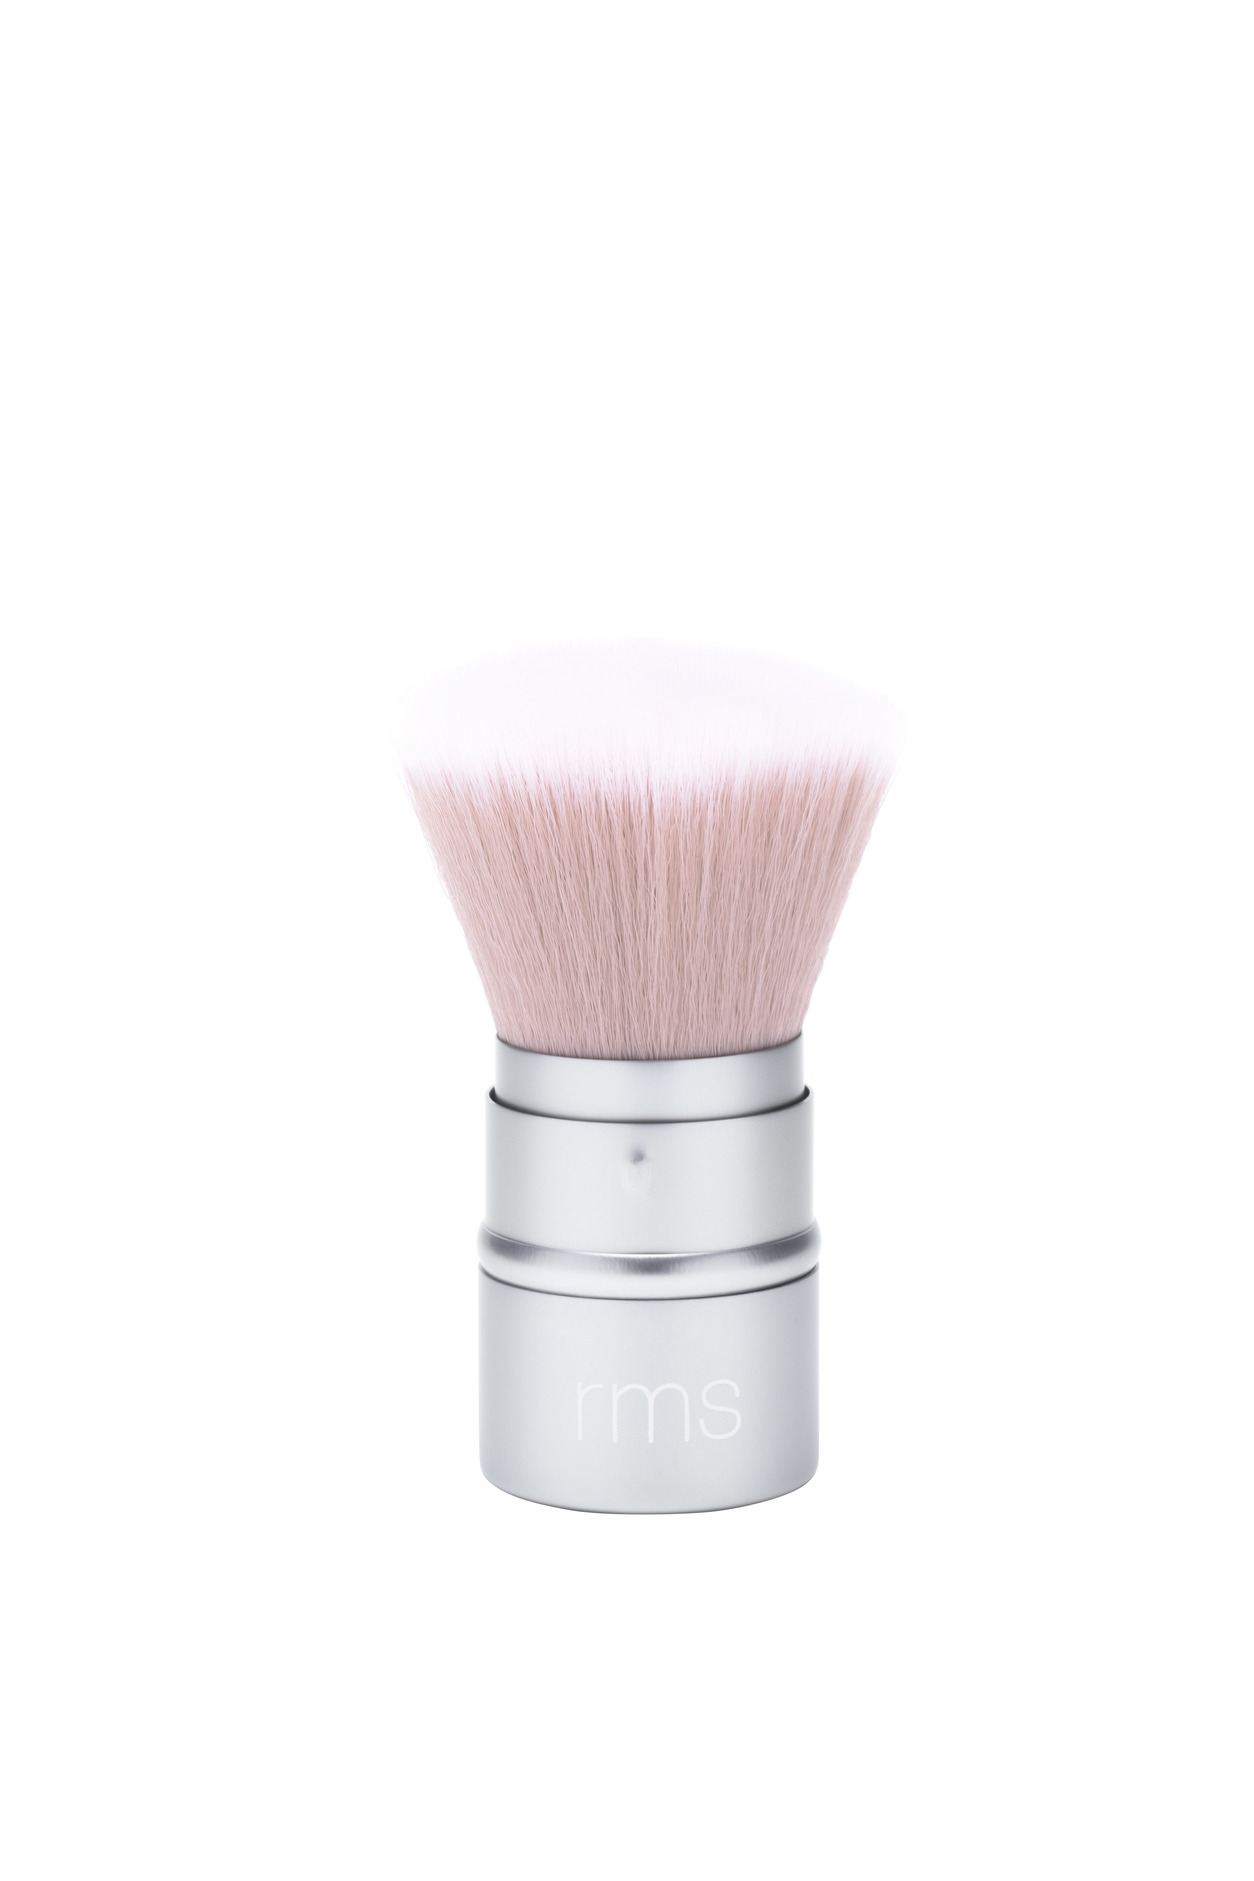 RMS Beauty living glow face&body brush